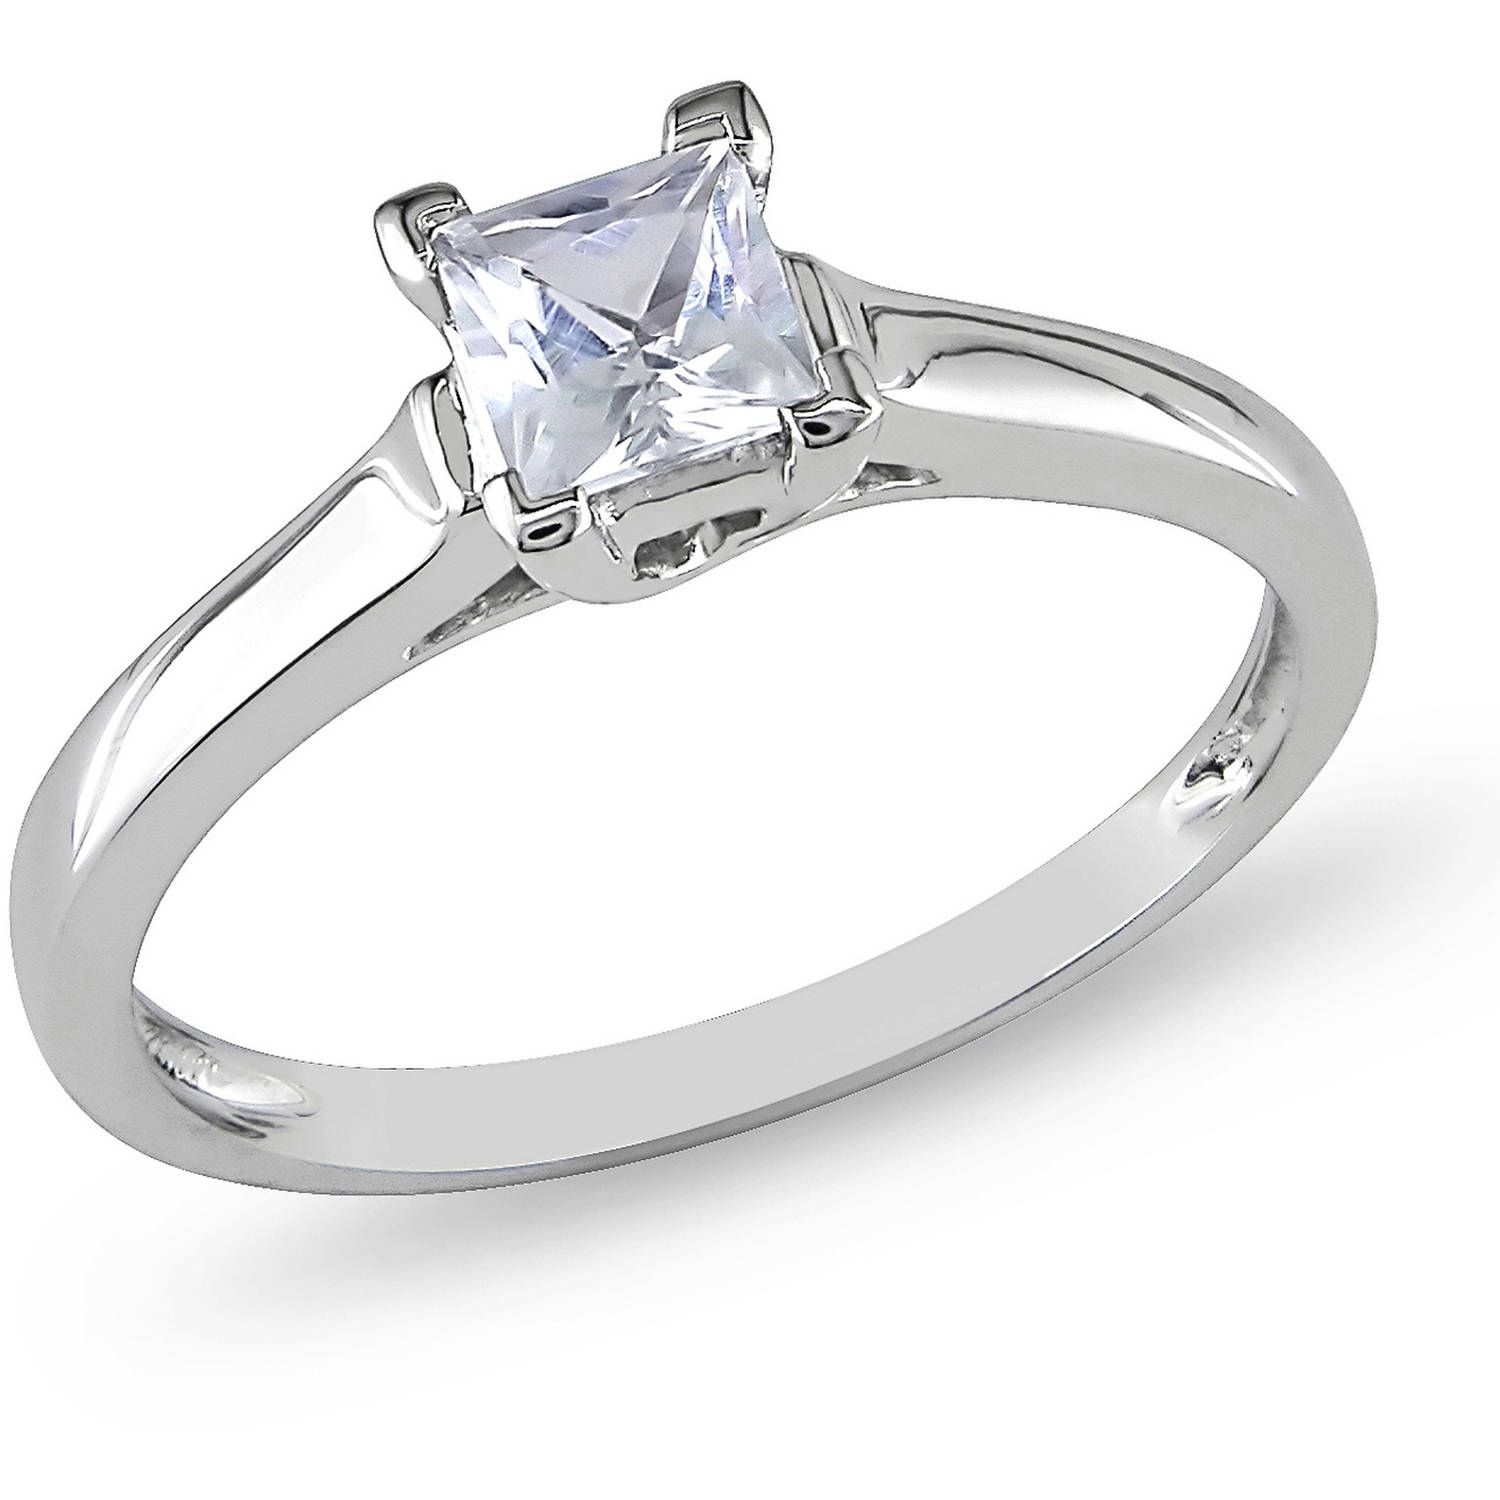 princess set sapphire out white this created rings bridal jeulia ring sterling check pin cut from silver classic